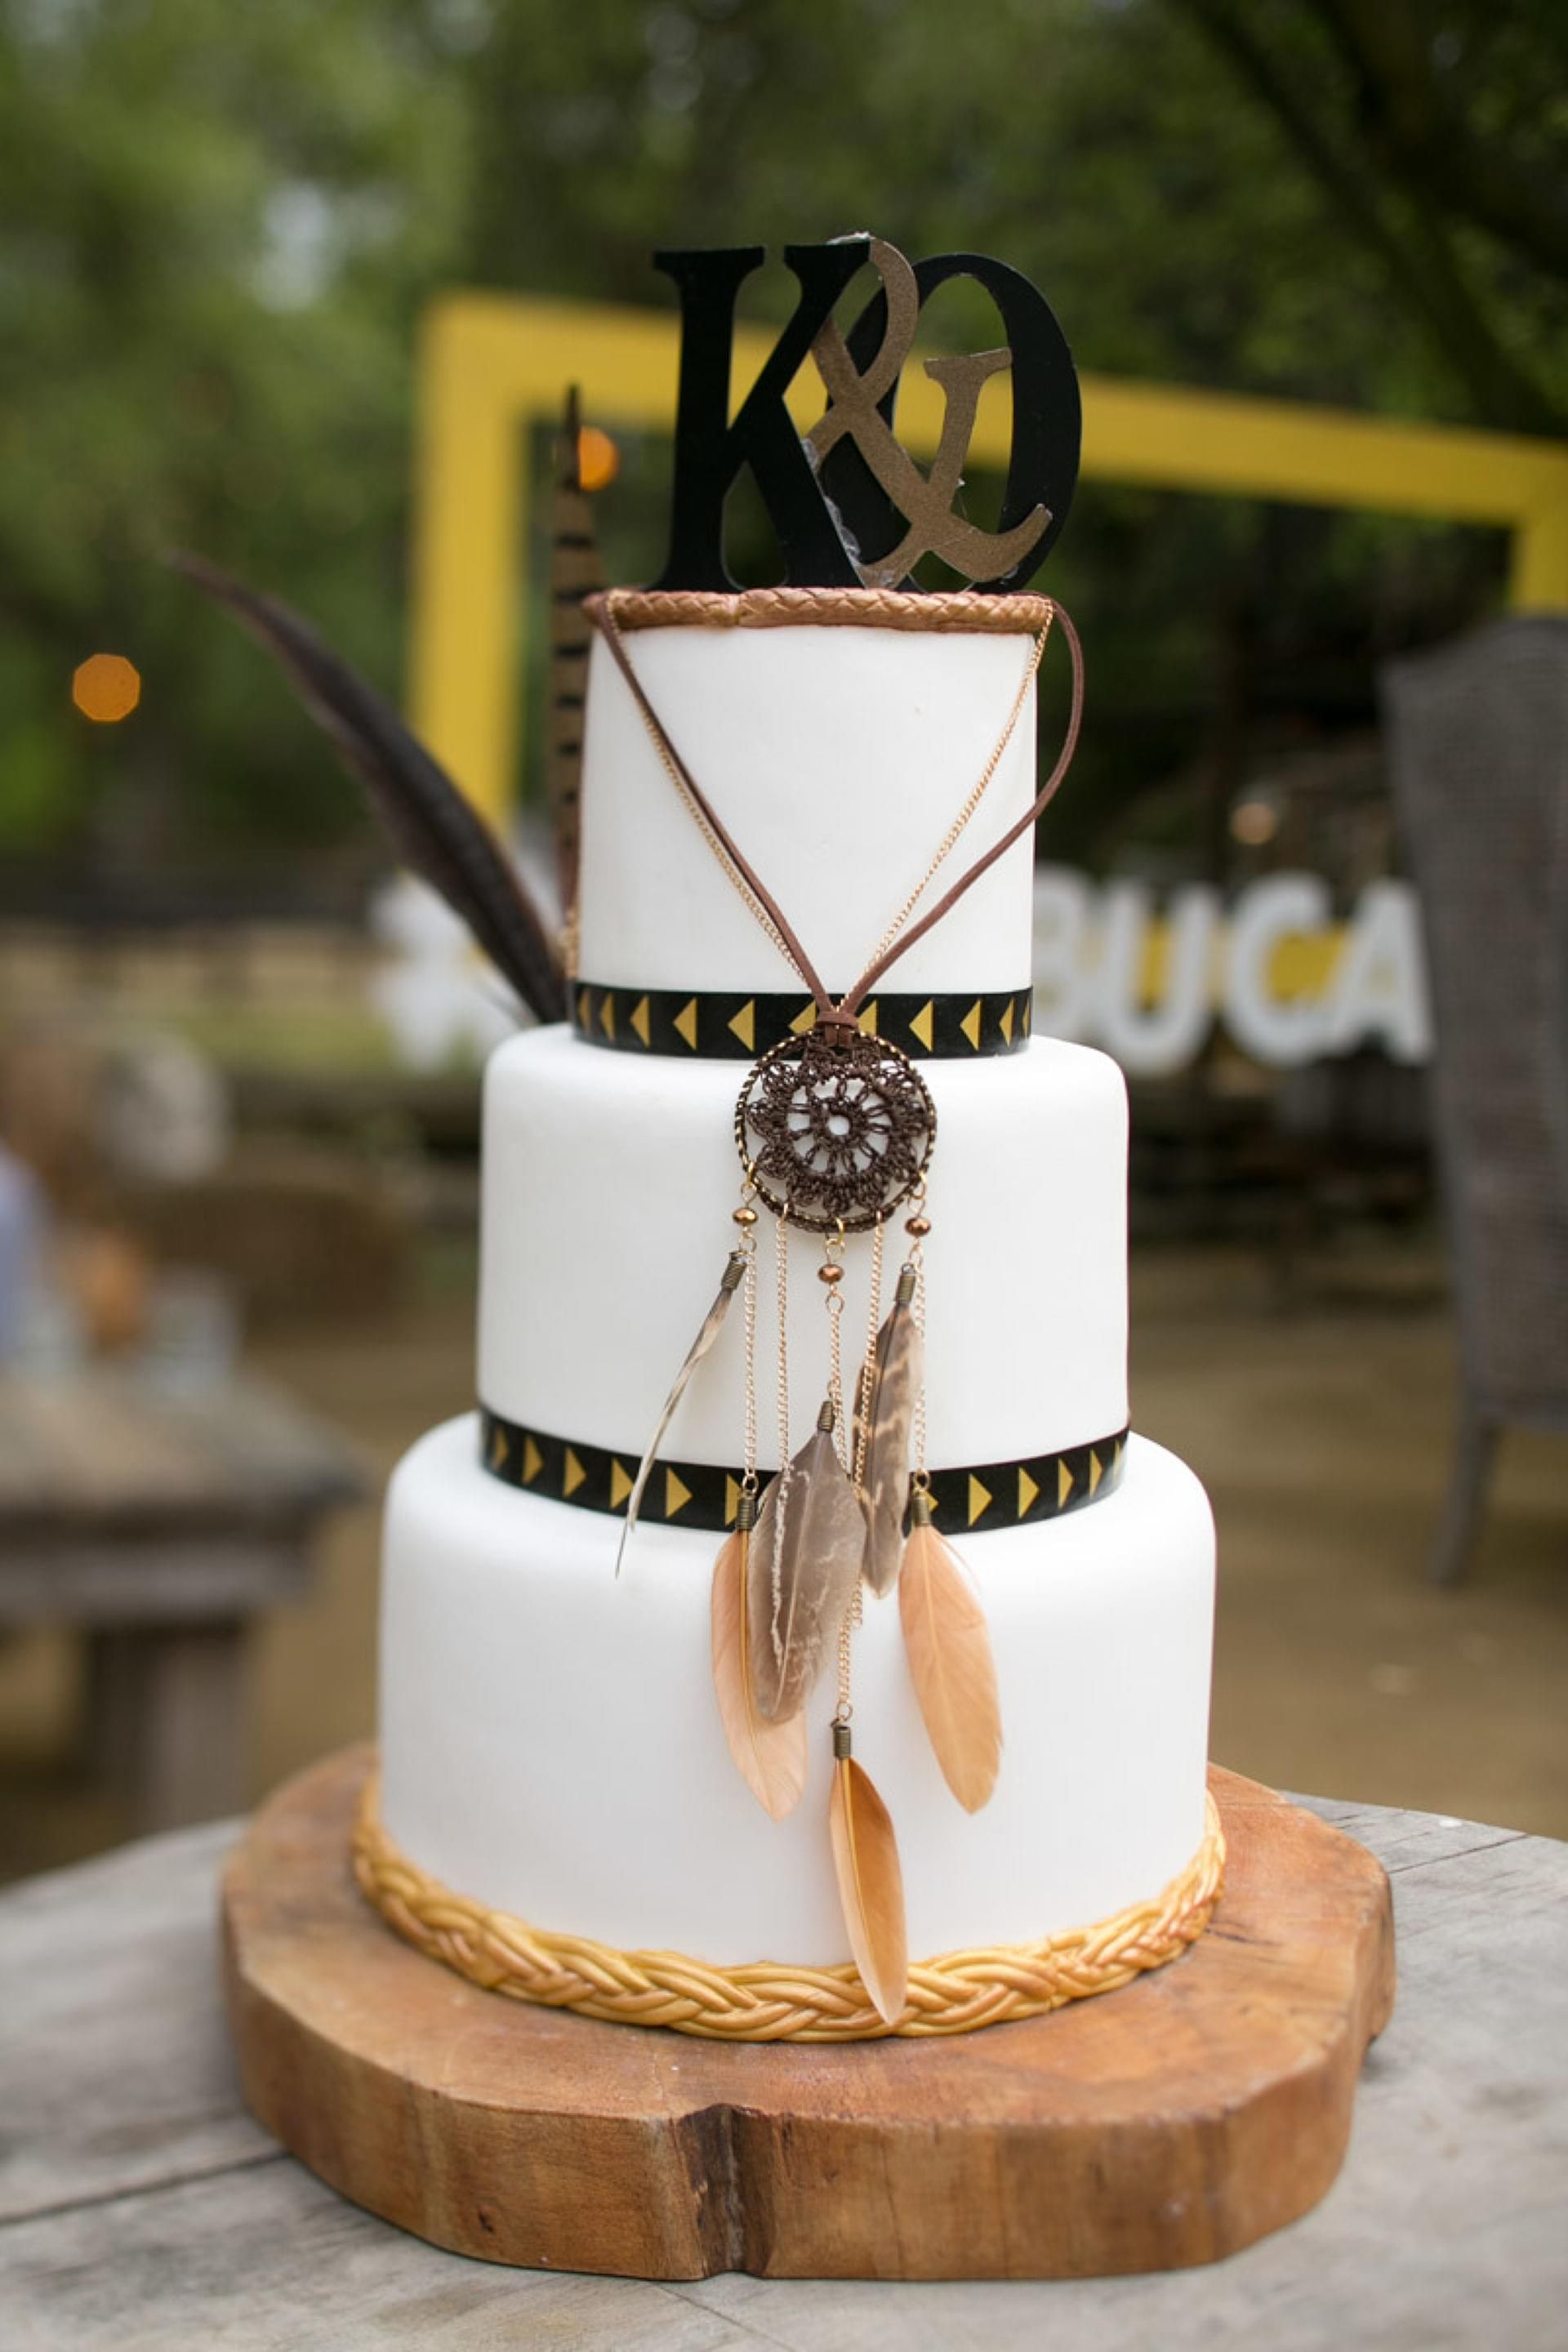 Boho Wedding Cake White Fondant Braided Gold Trim Feathers